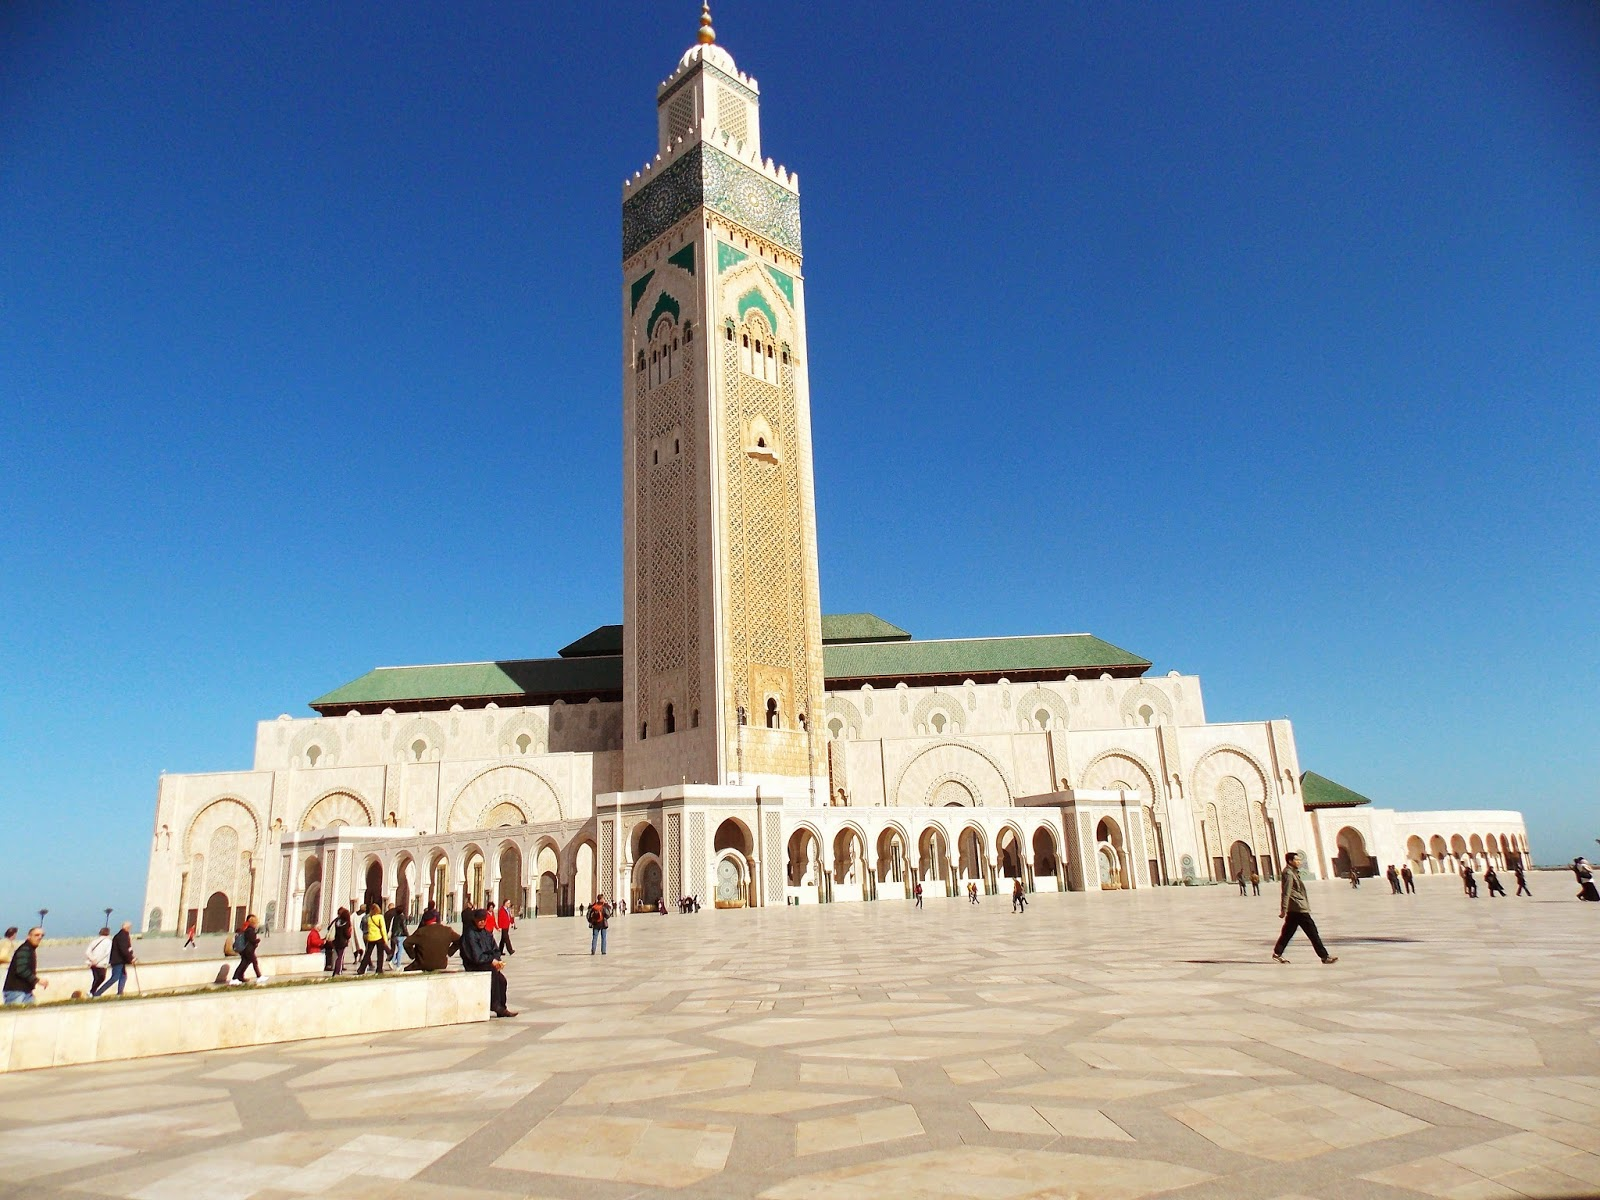 Morocco, Casablanca, Hassan II mosque, The Grand Mosque of Hassan II, Where to go in Morocco, Travel, Holiday